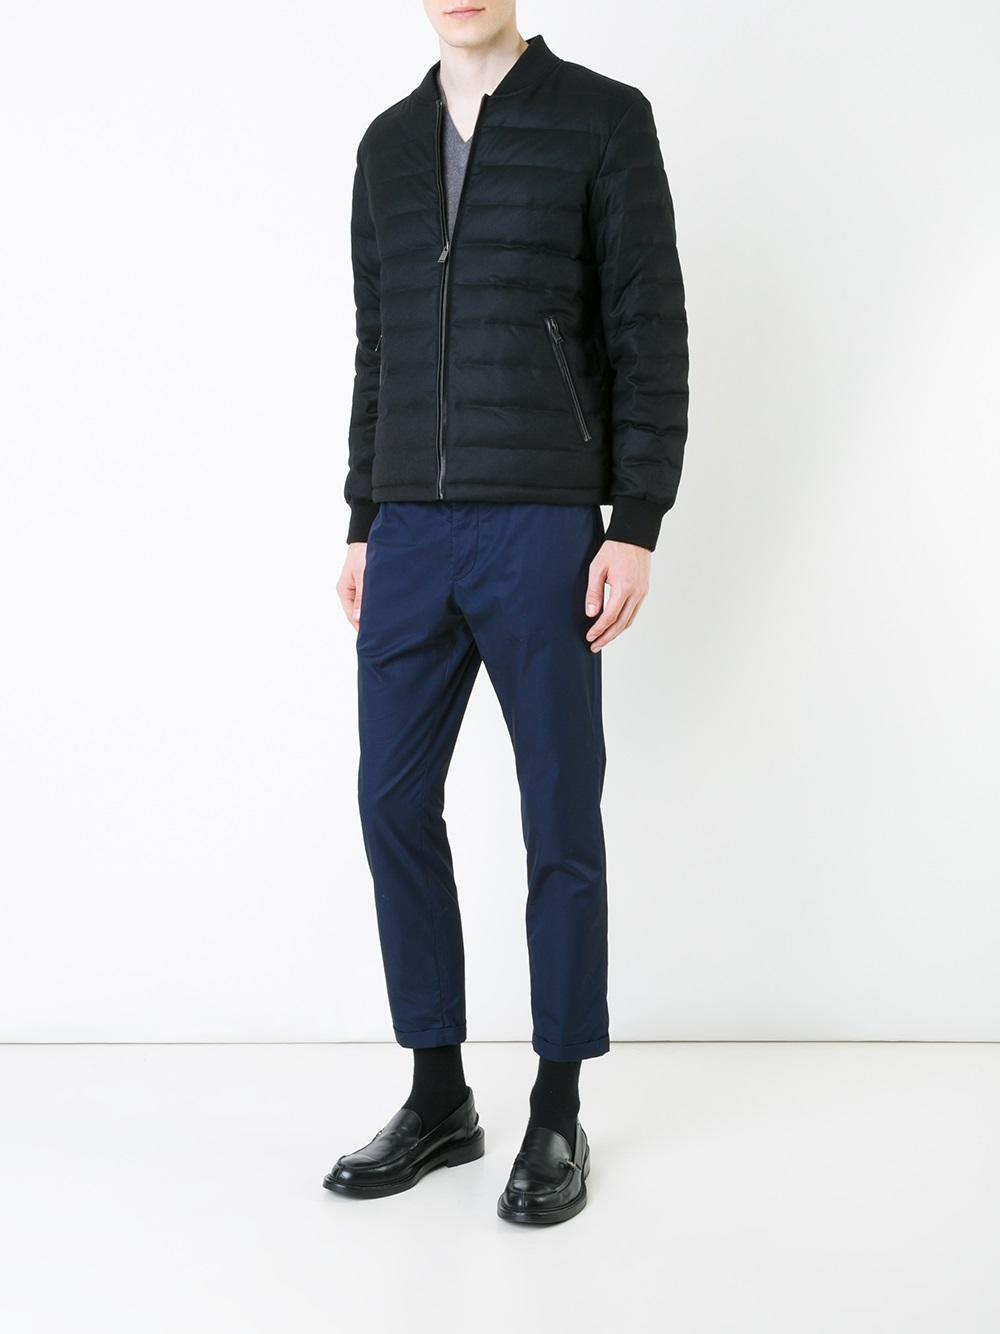 Kent & Curwen Wool Down Bomber Jacket in Black for Men